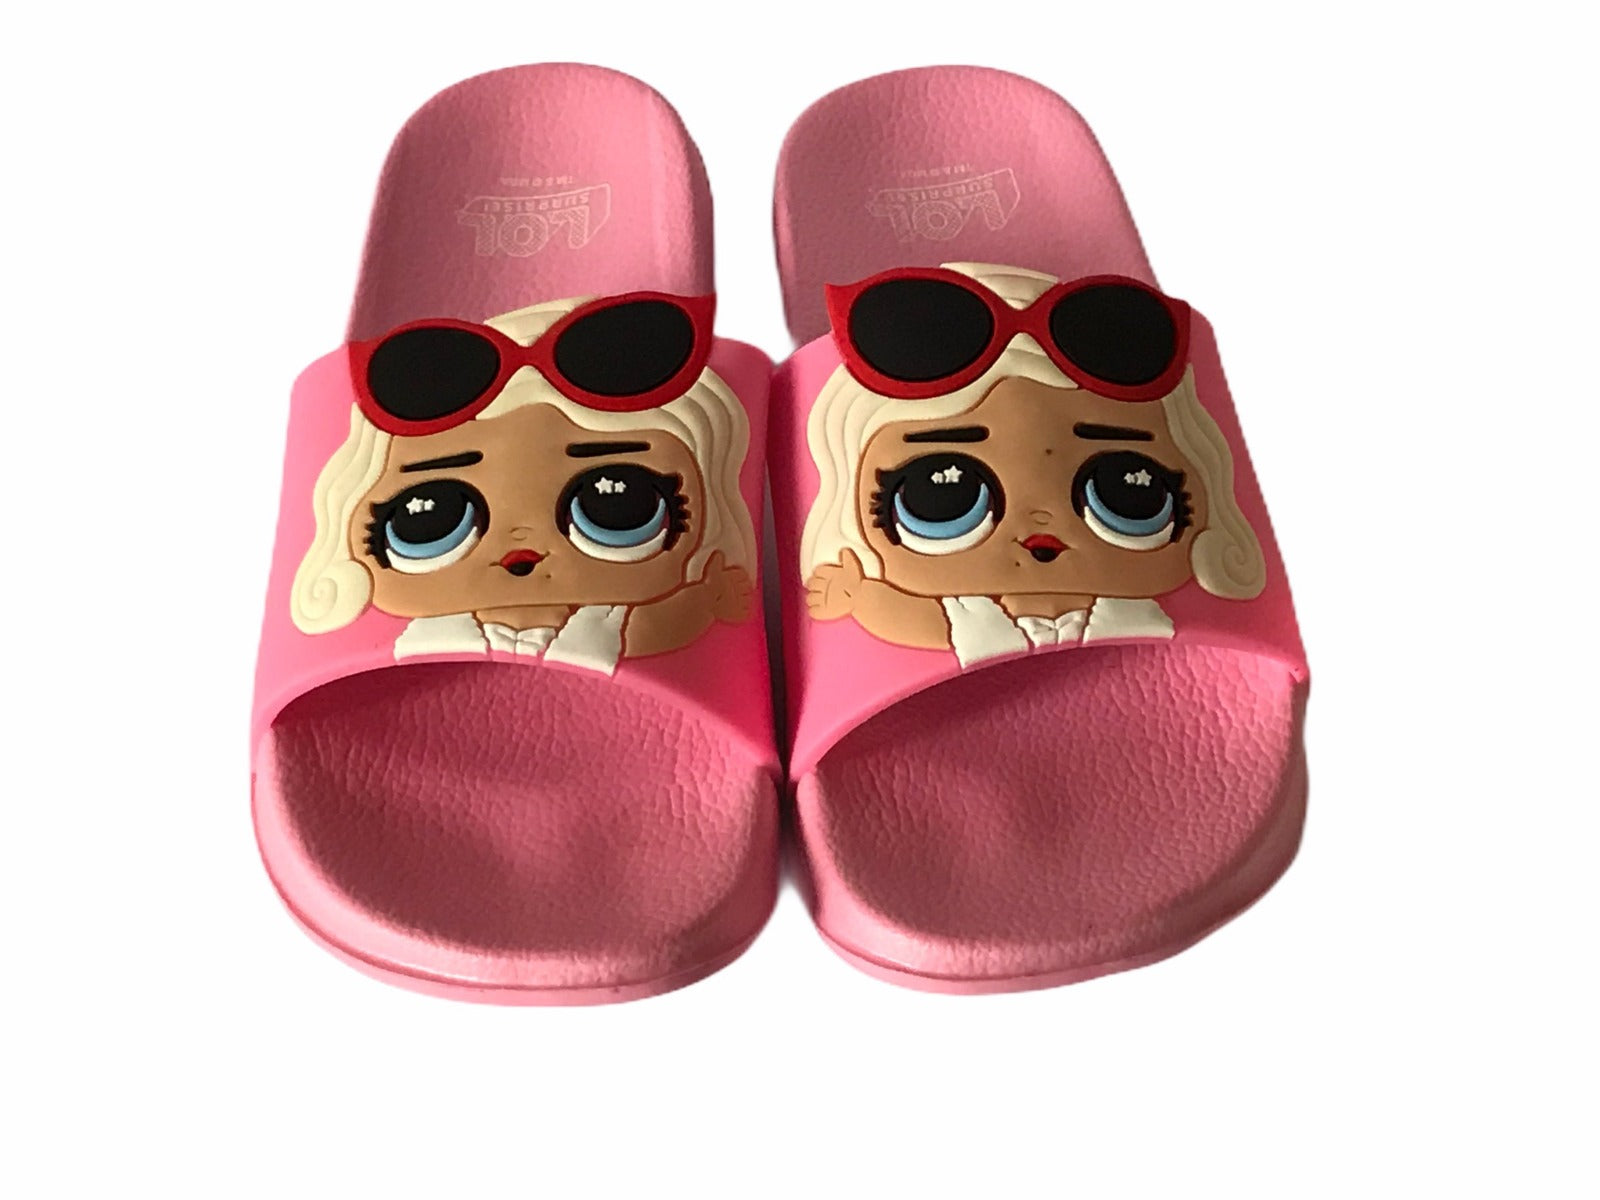 Kids L.O.L Surprise Character Sandals - Glo Selections Kids Shoes